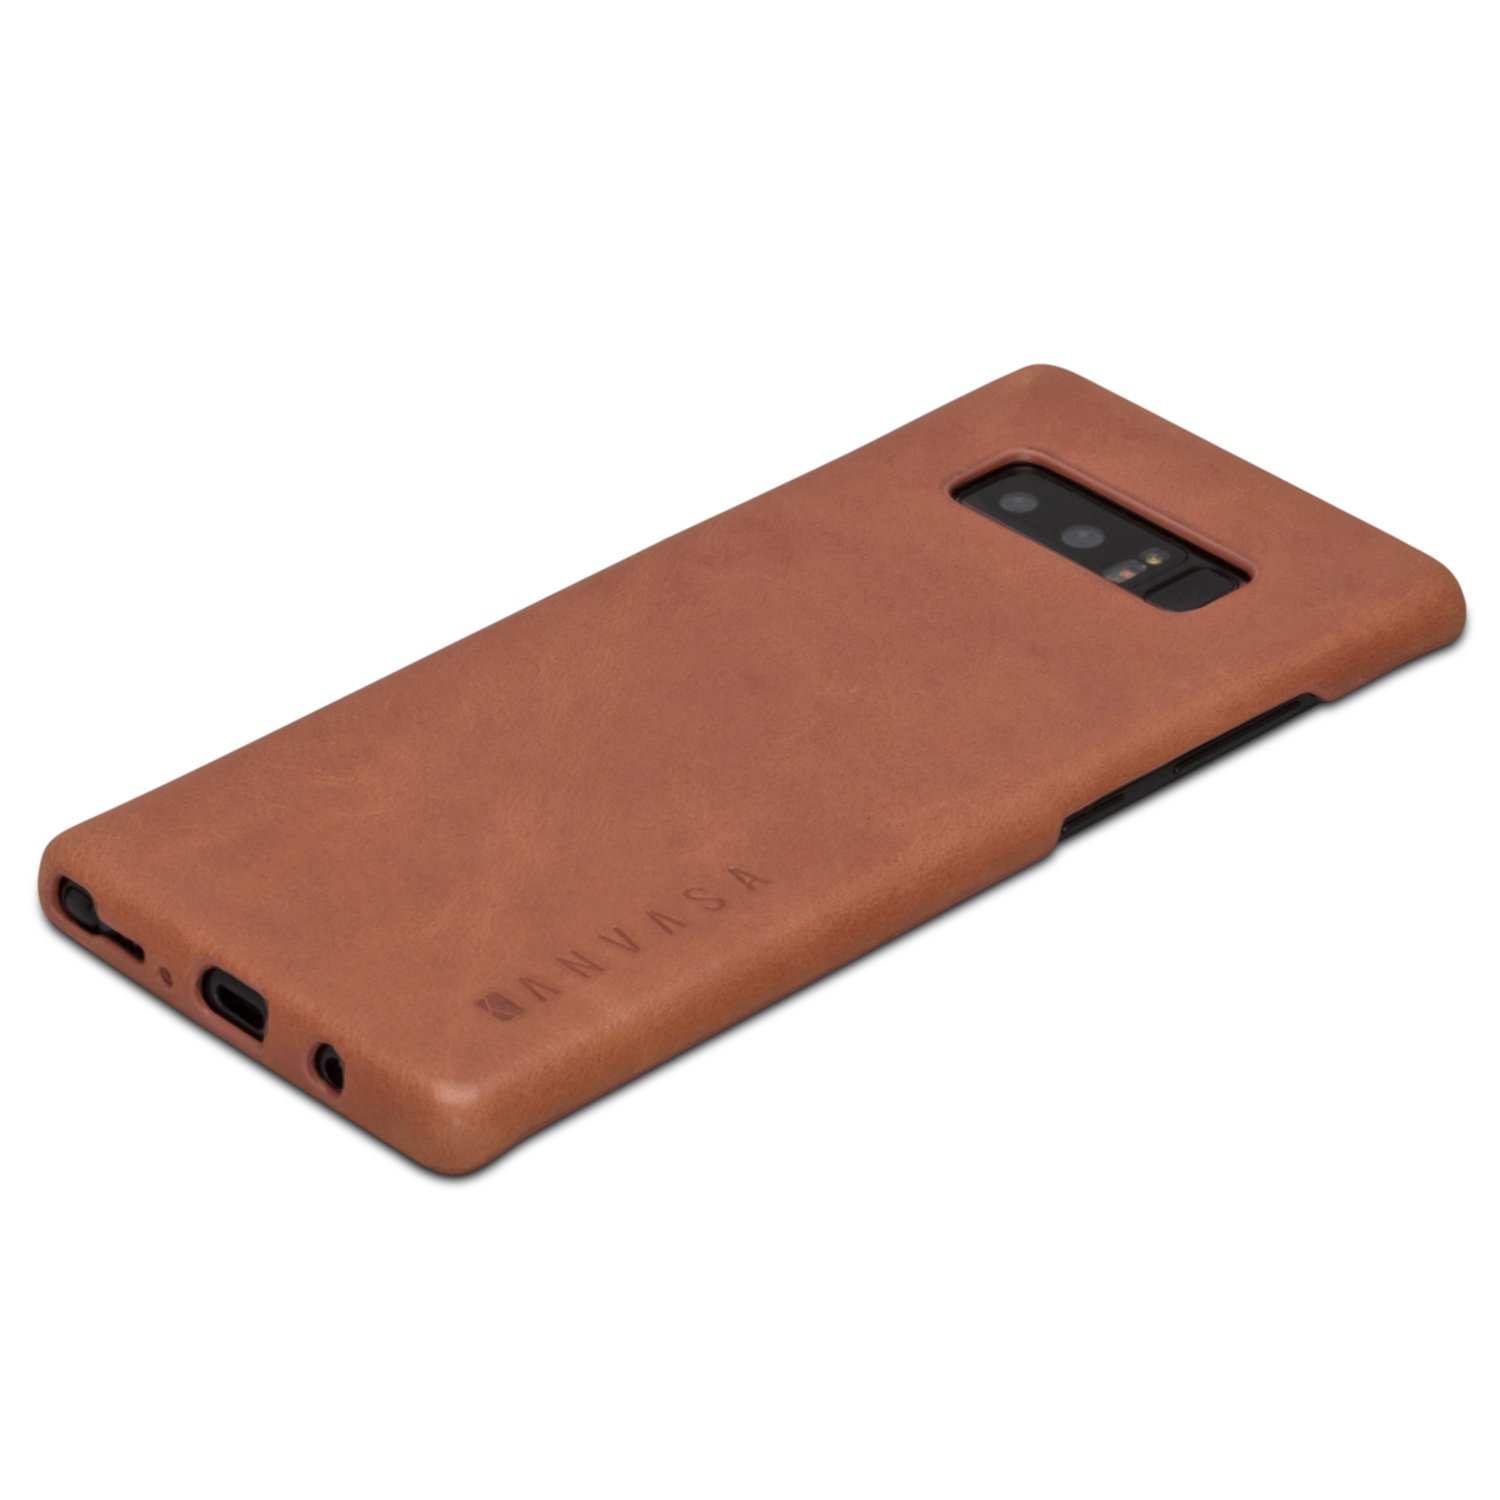 """Galaxy Note 8 Leather Case Back Cover Brown   Kanvasa """"One"""" Back Case For Samsung Galaxy Note 8 (6.3"""")   Luxury Pouch Made From Real Genuine Leather   Optimal Protection & Premium Leather   Ultra Thin by Kanvasa"""